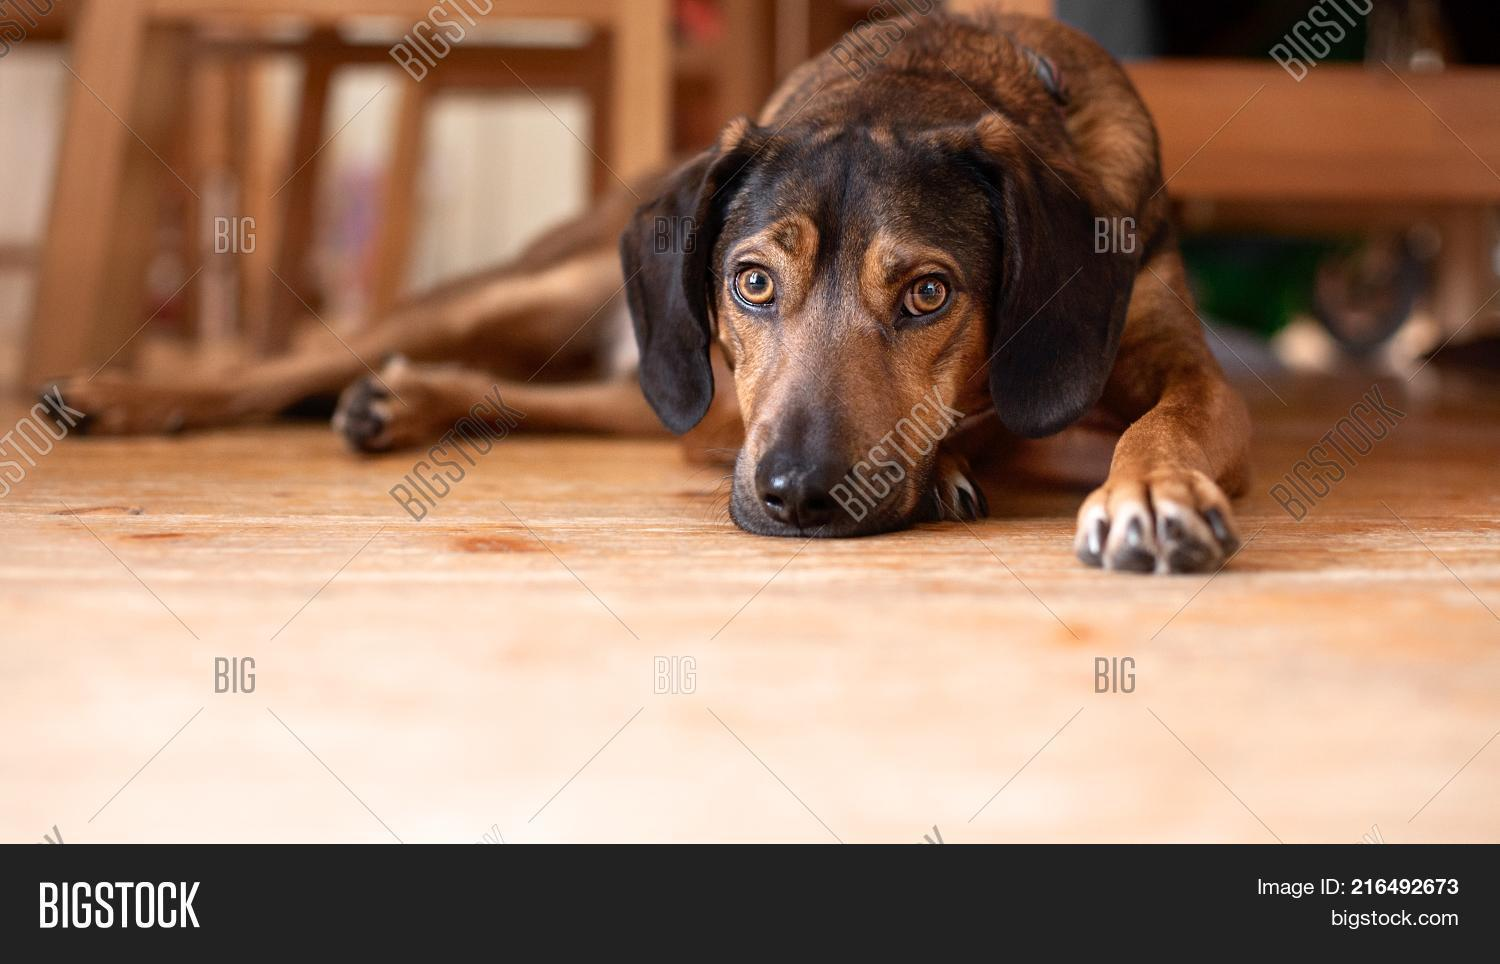 43a39916fec Brown dog laying down on the wooden surface ground